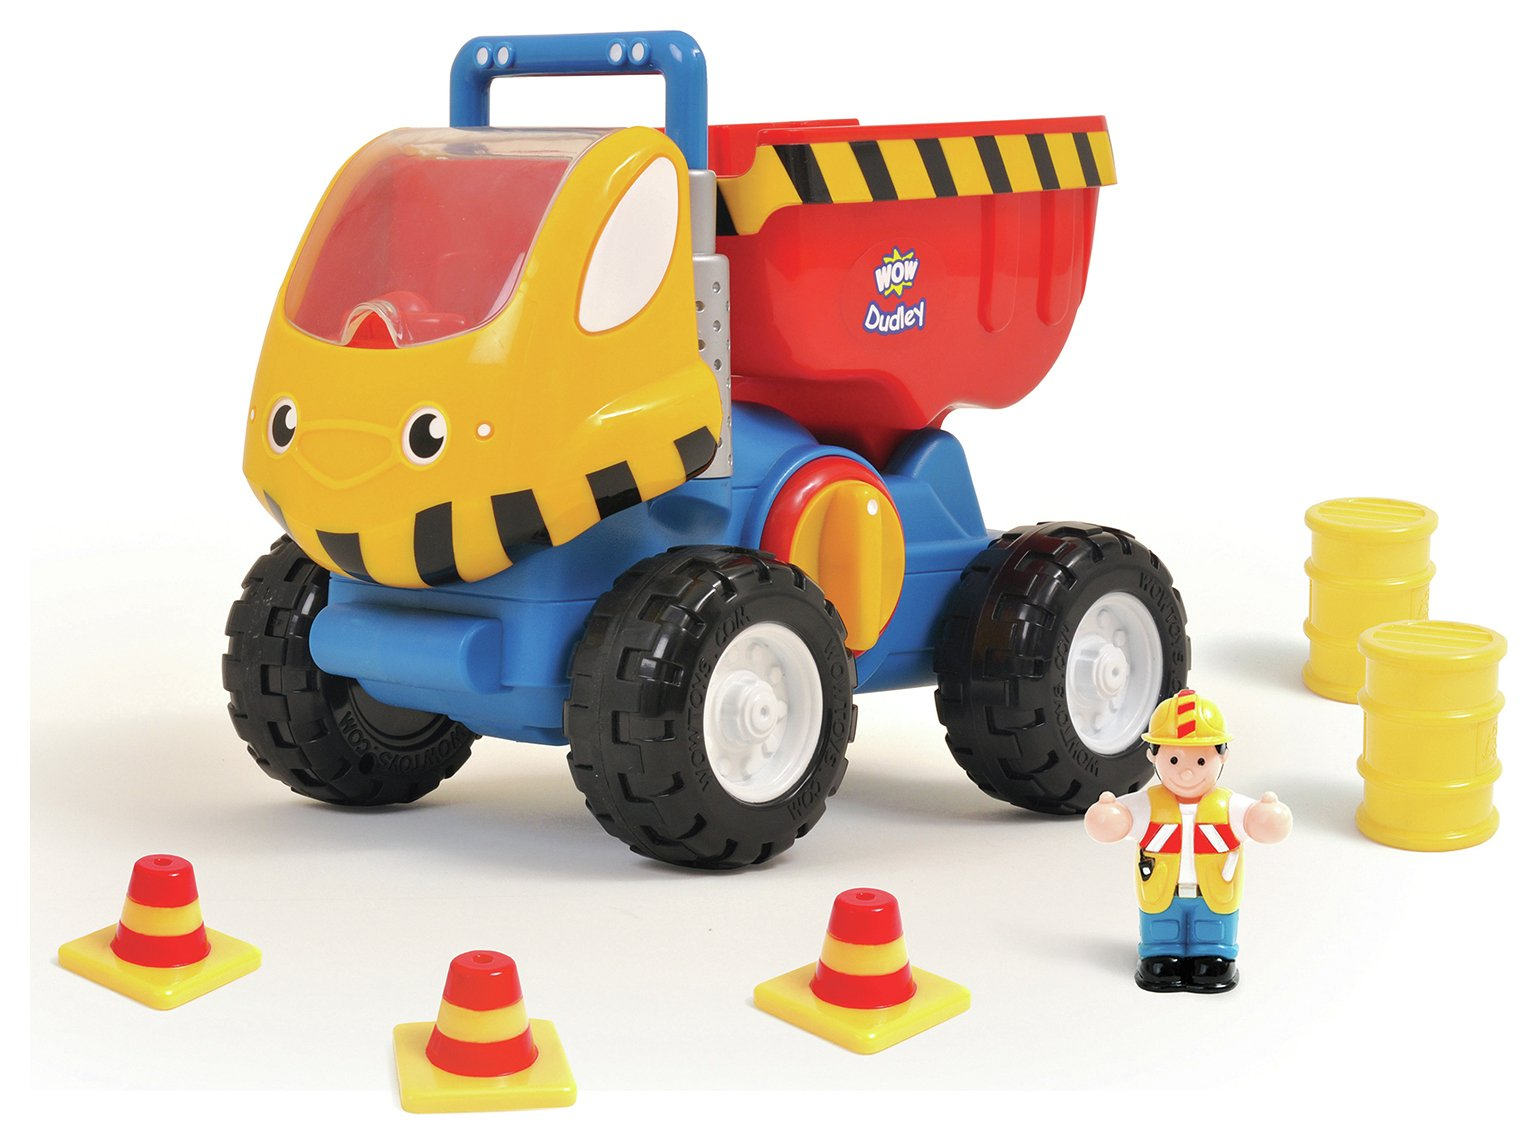 Image of WOW Toys - Dudley Dump Truck.